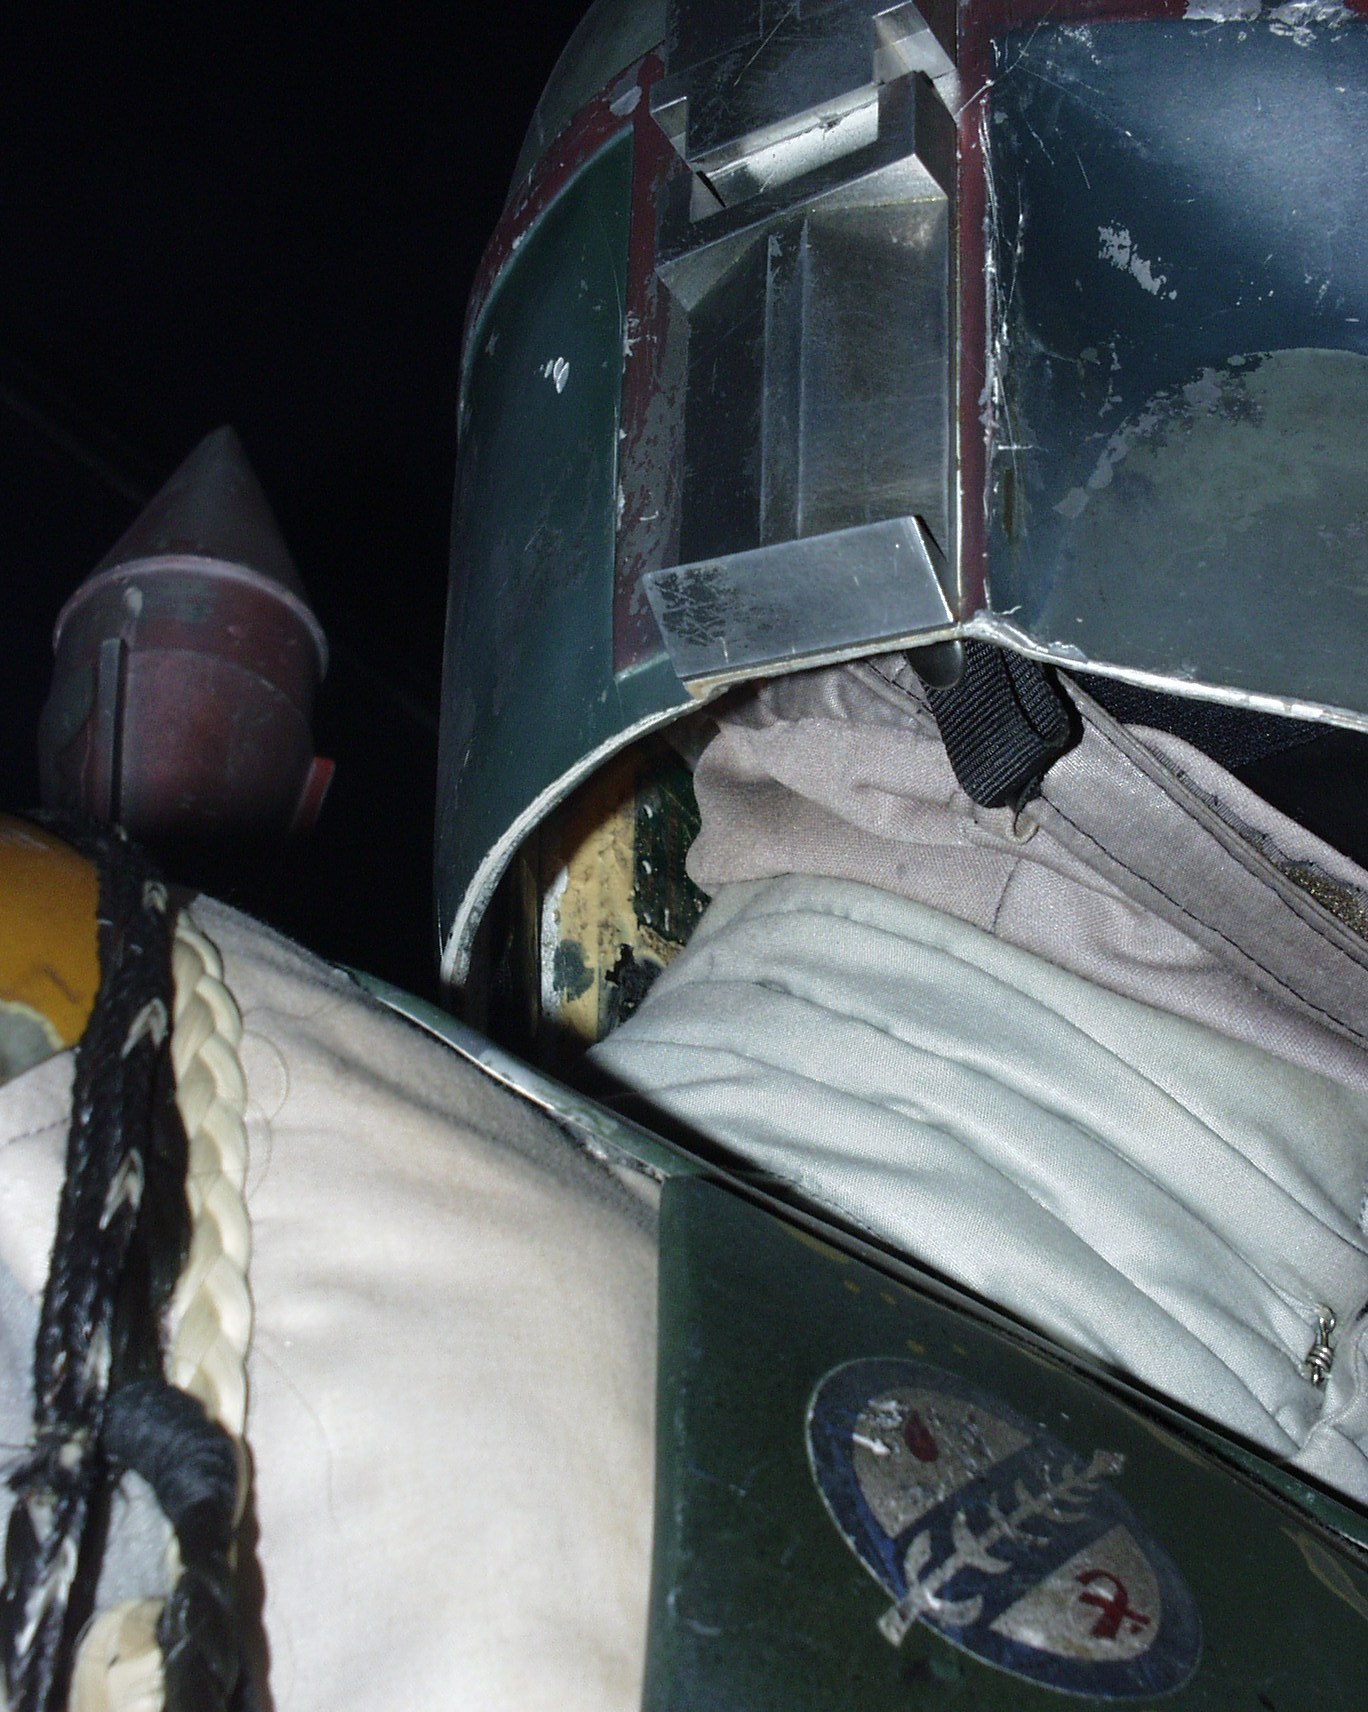 Boba-Fett-Costume-MoM-121601A-371.jpg